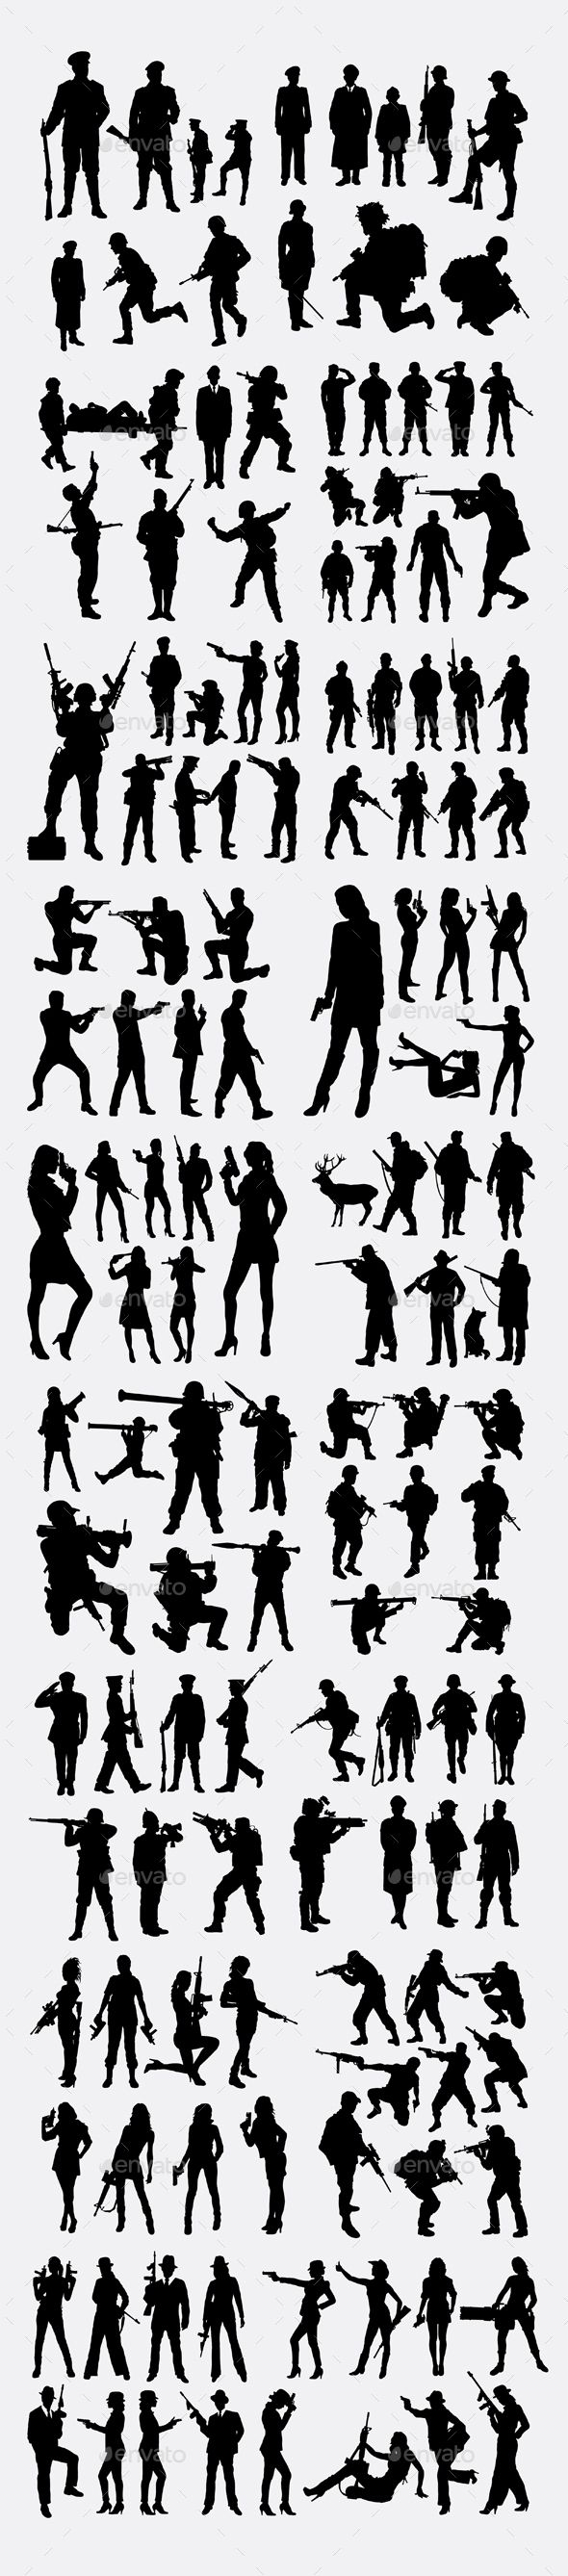 100 Soldier Police Silhouettes Army Pinterest Silhouettes